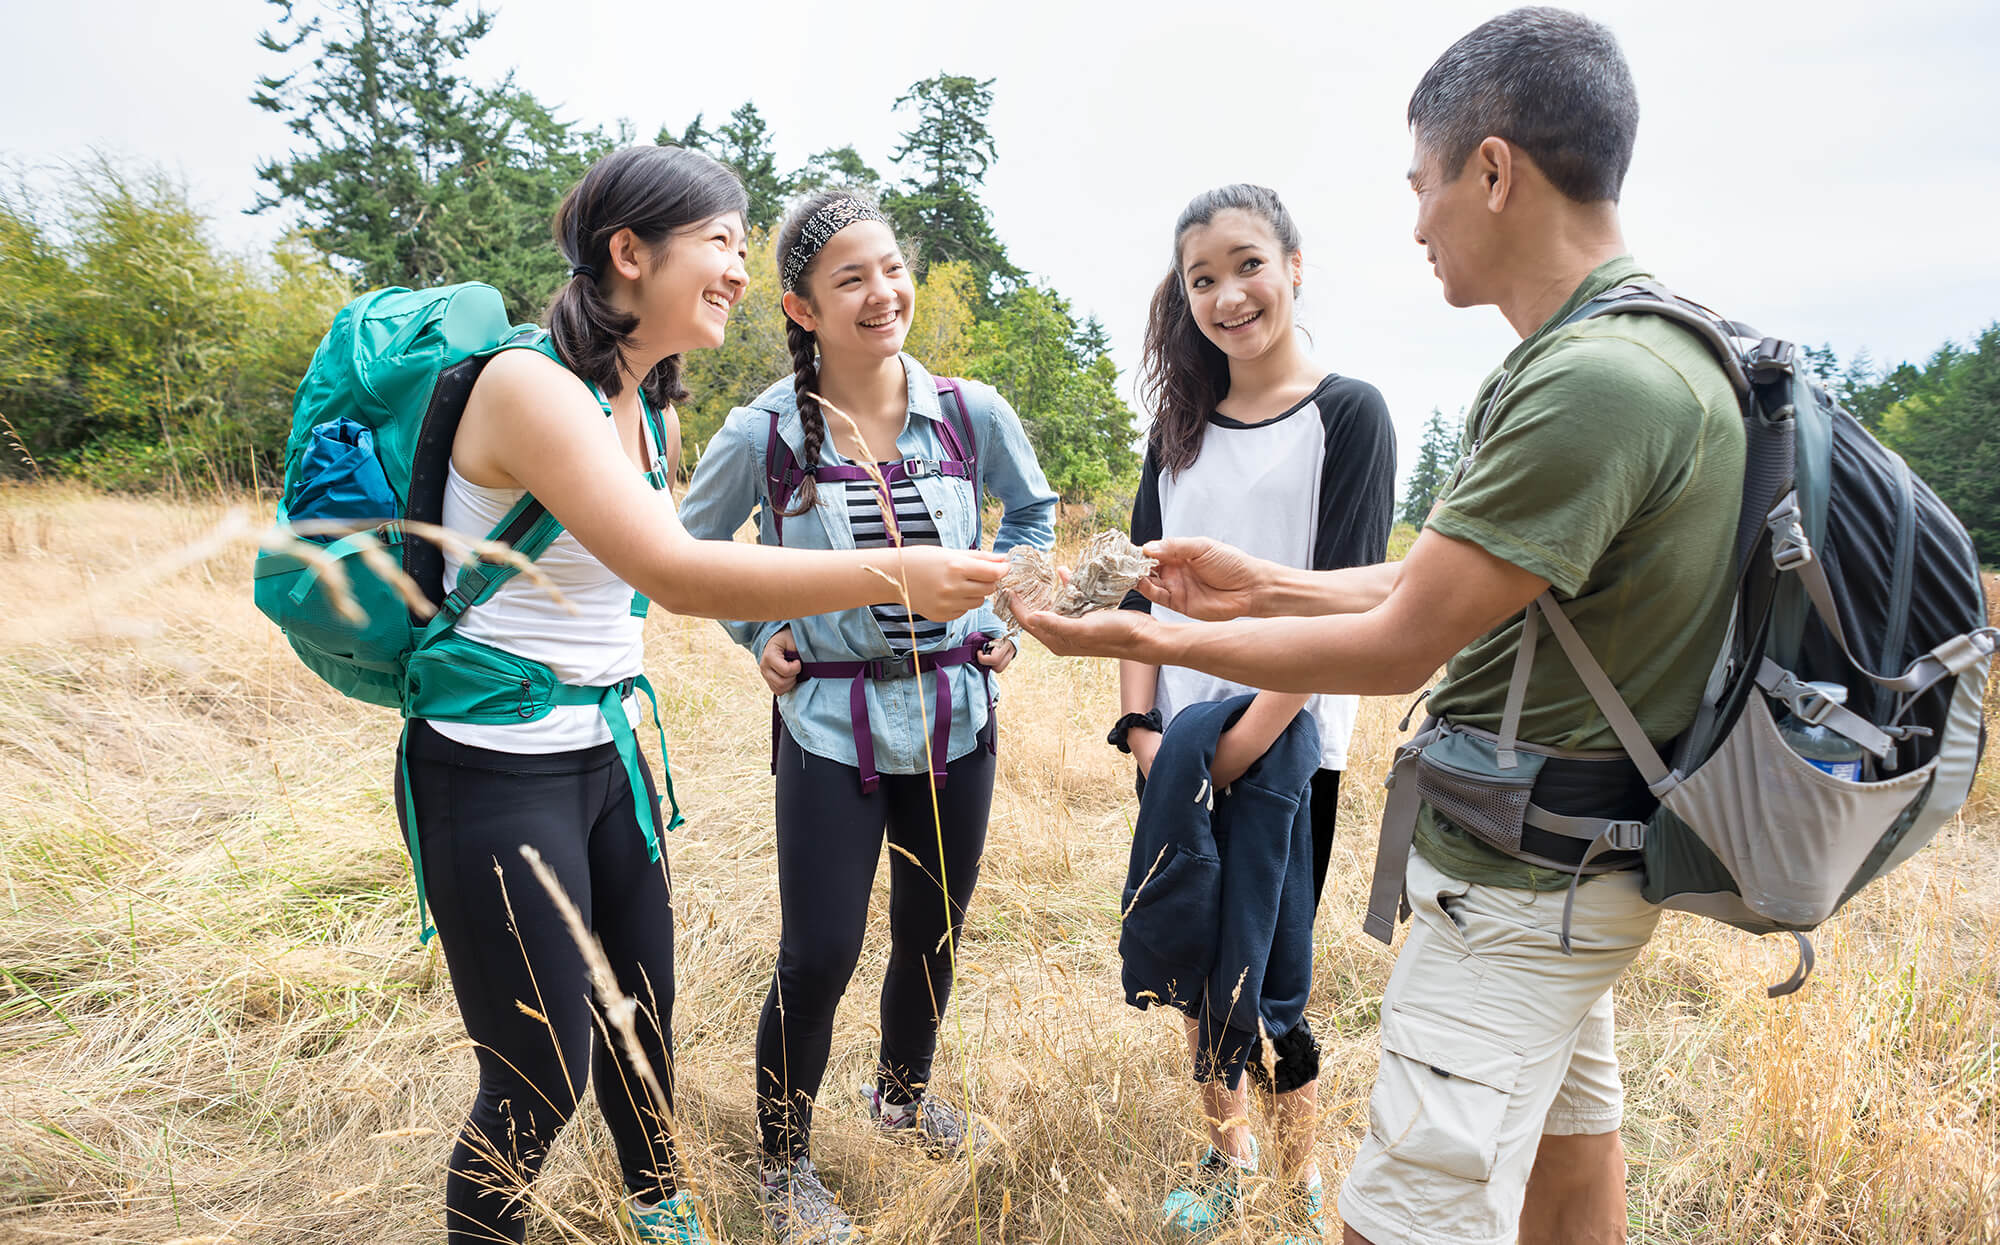 3 teenage girls are in a meadow with an adult man who appears to be an outdoor educator. They are examining something that the educator is holding in his hands that appears to be something found in nature. They are wearing backpacks and hiking gear.